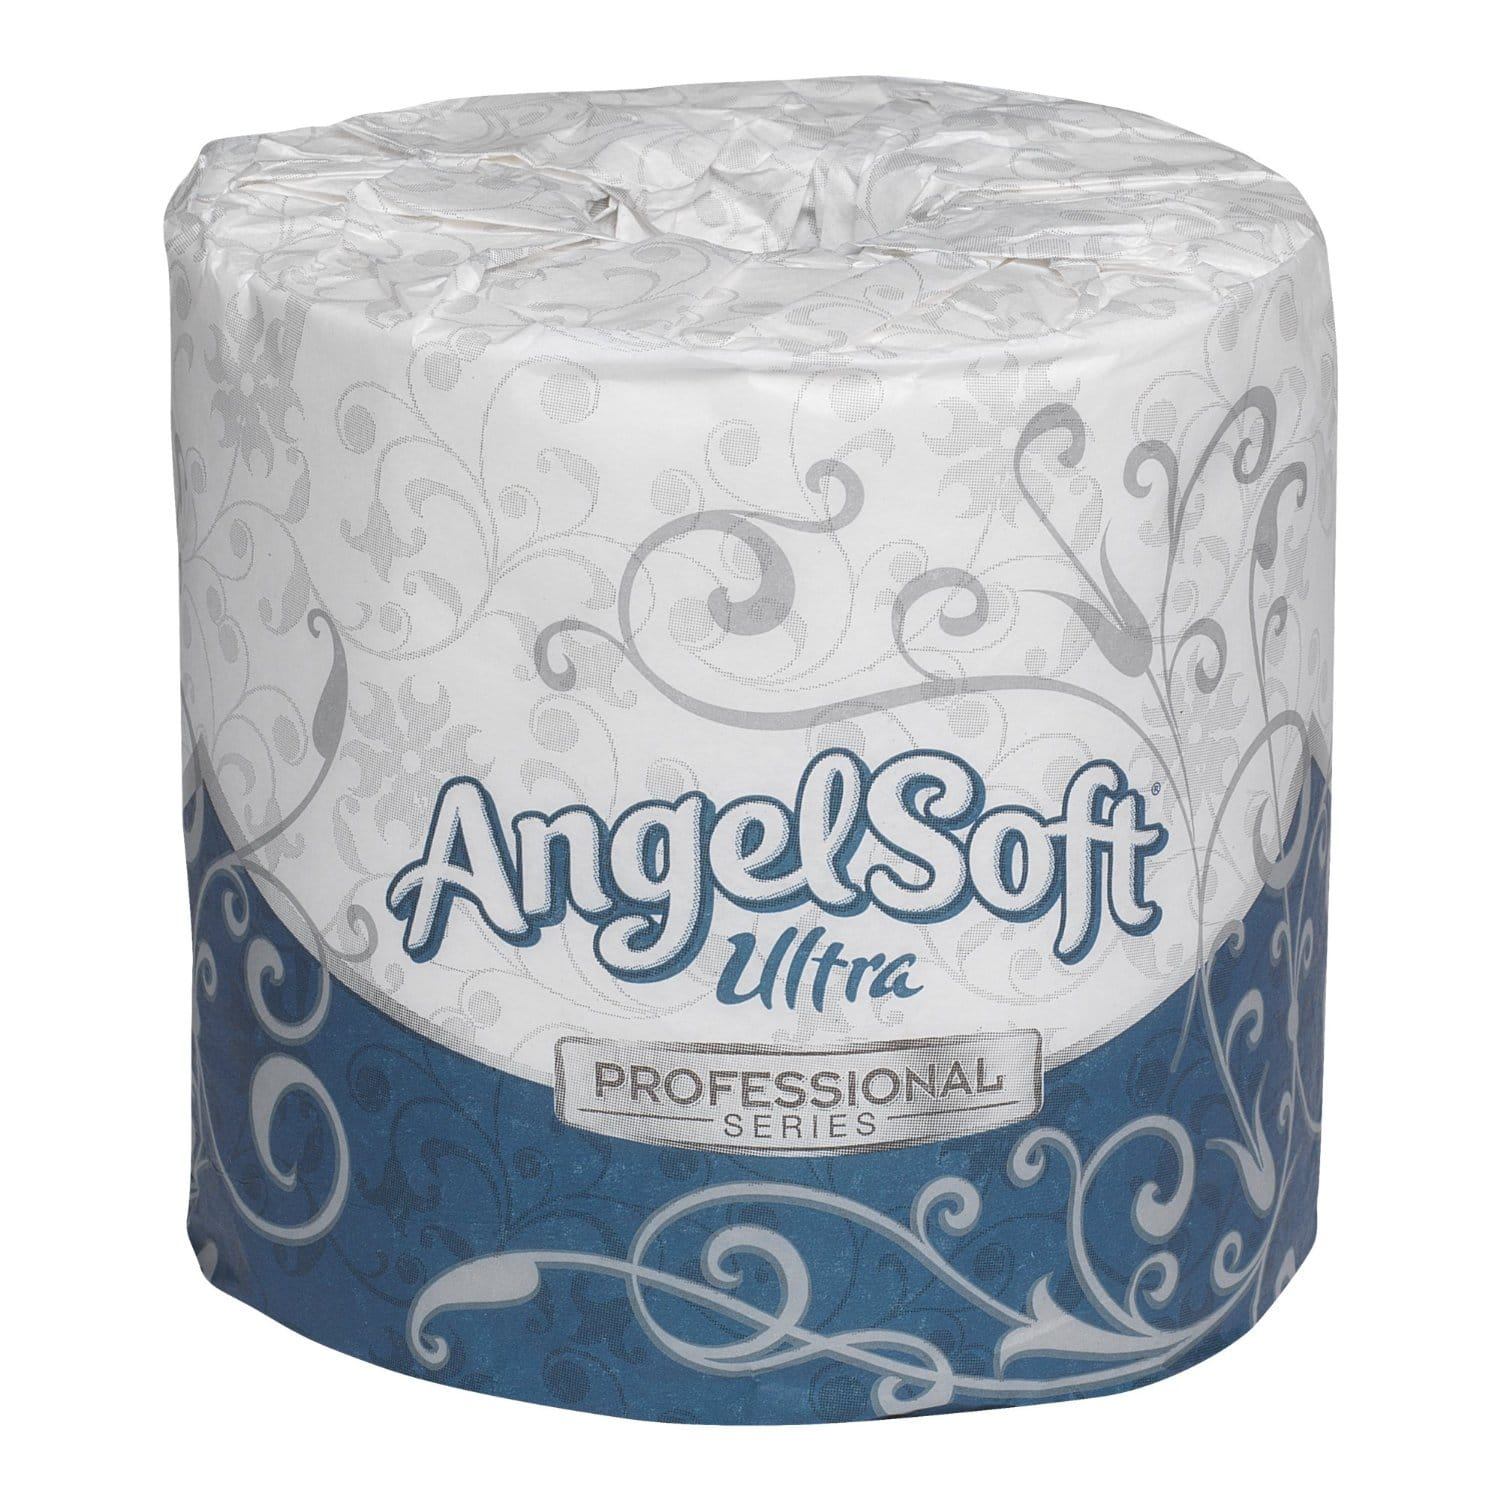 60-Rolls Georgia Pacific Angel Soft Ultra 2-Ply Bath Tissue  $33.65 + Free In-Store Pickup